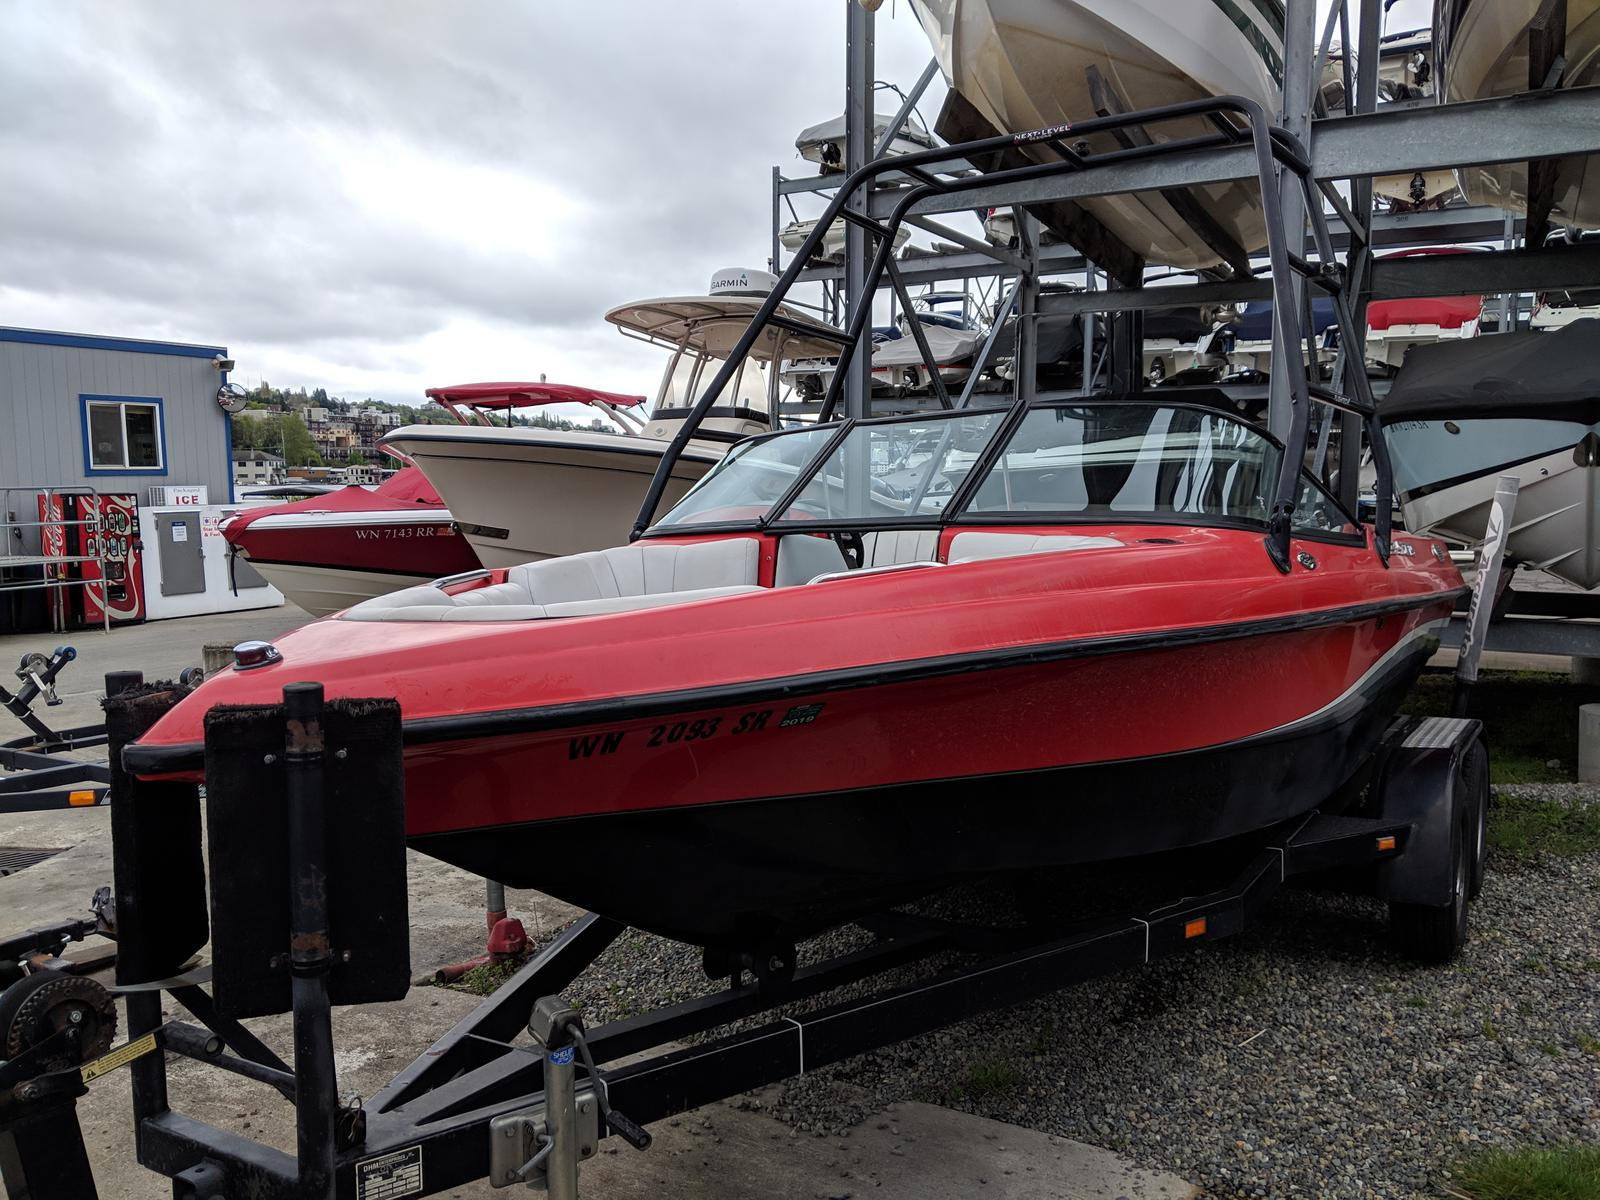 Mb Sports boats for sale - Boat Trader